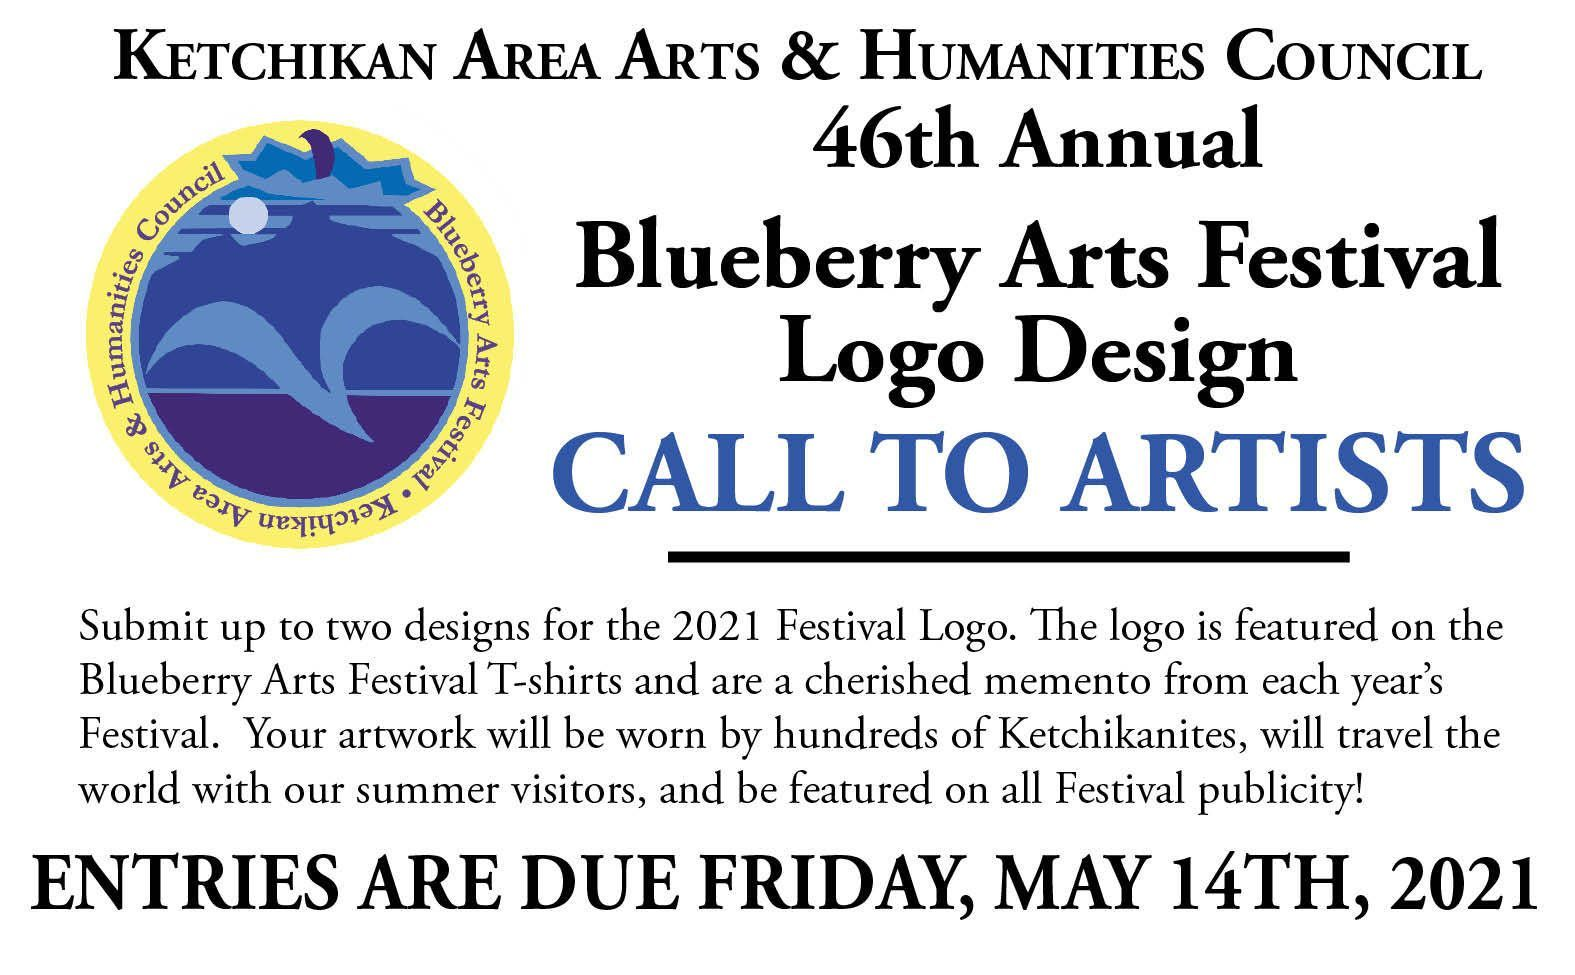 46th Annual Blueberry Arts Festival Logo Design Call to Artists